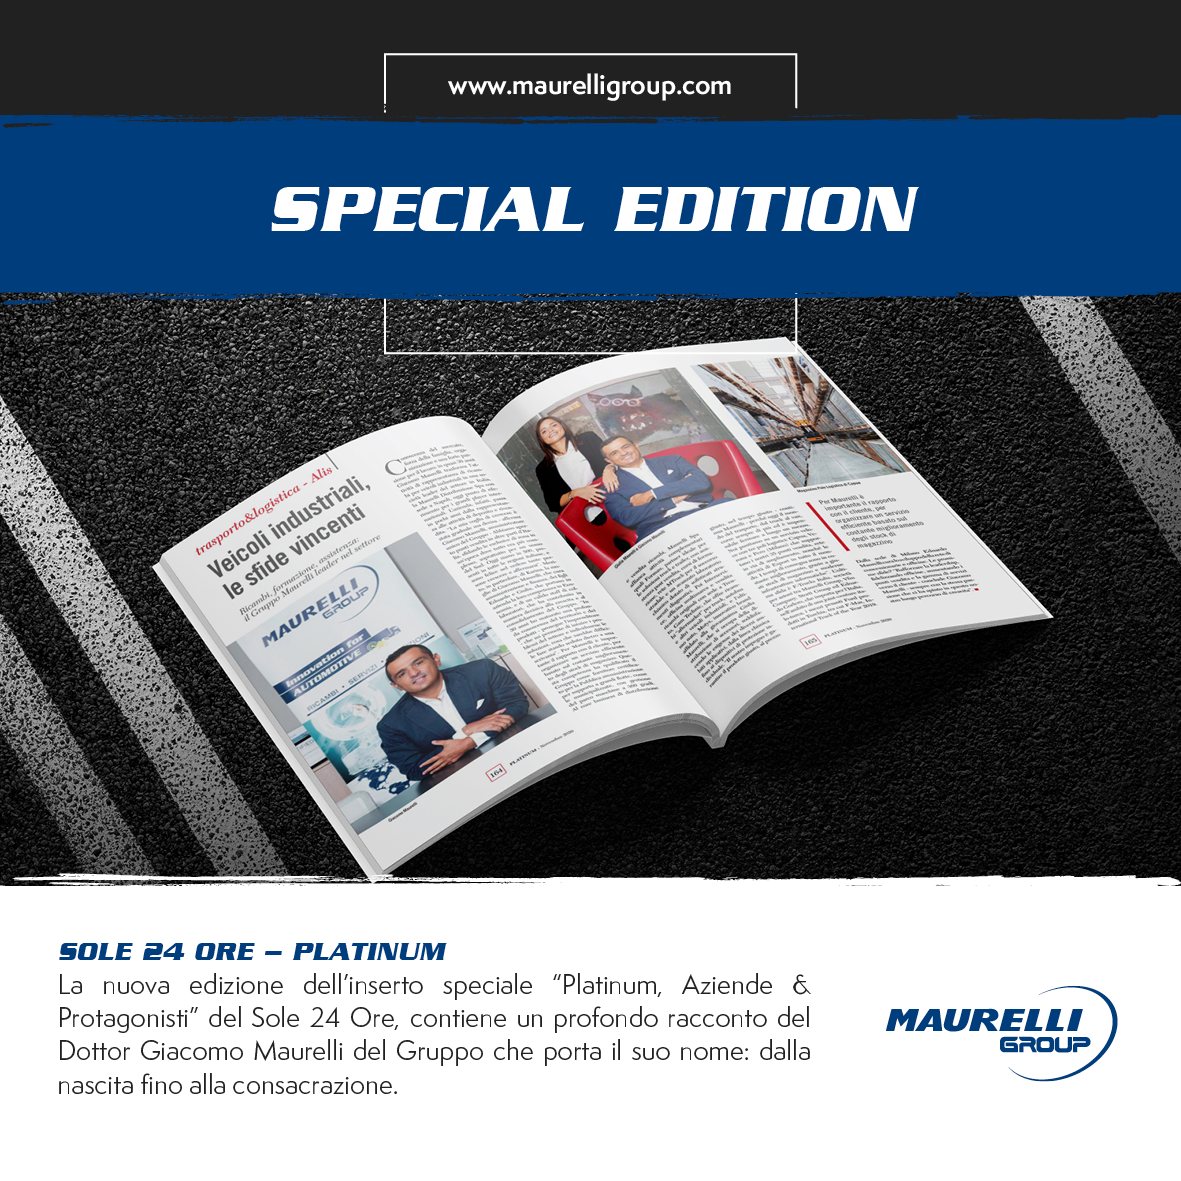 Maurelli group Special Edition